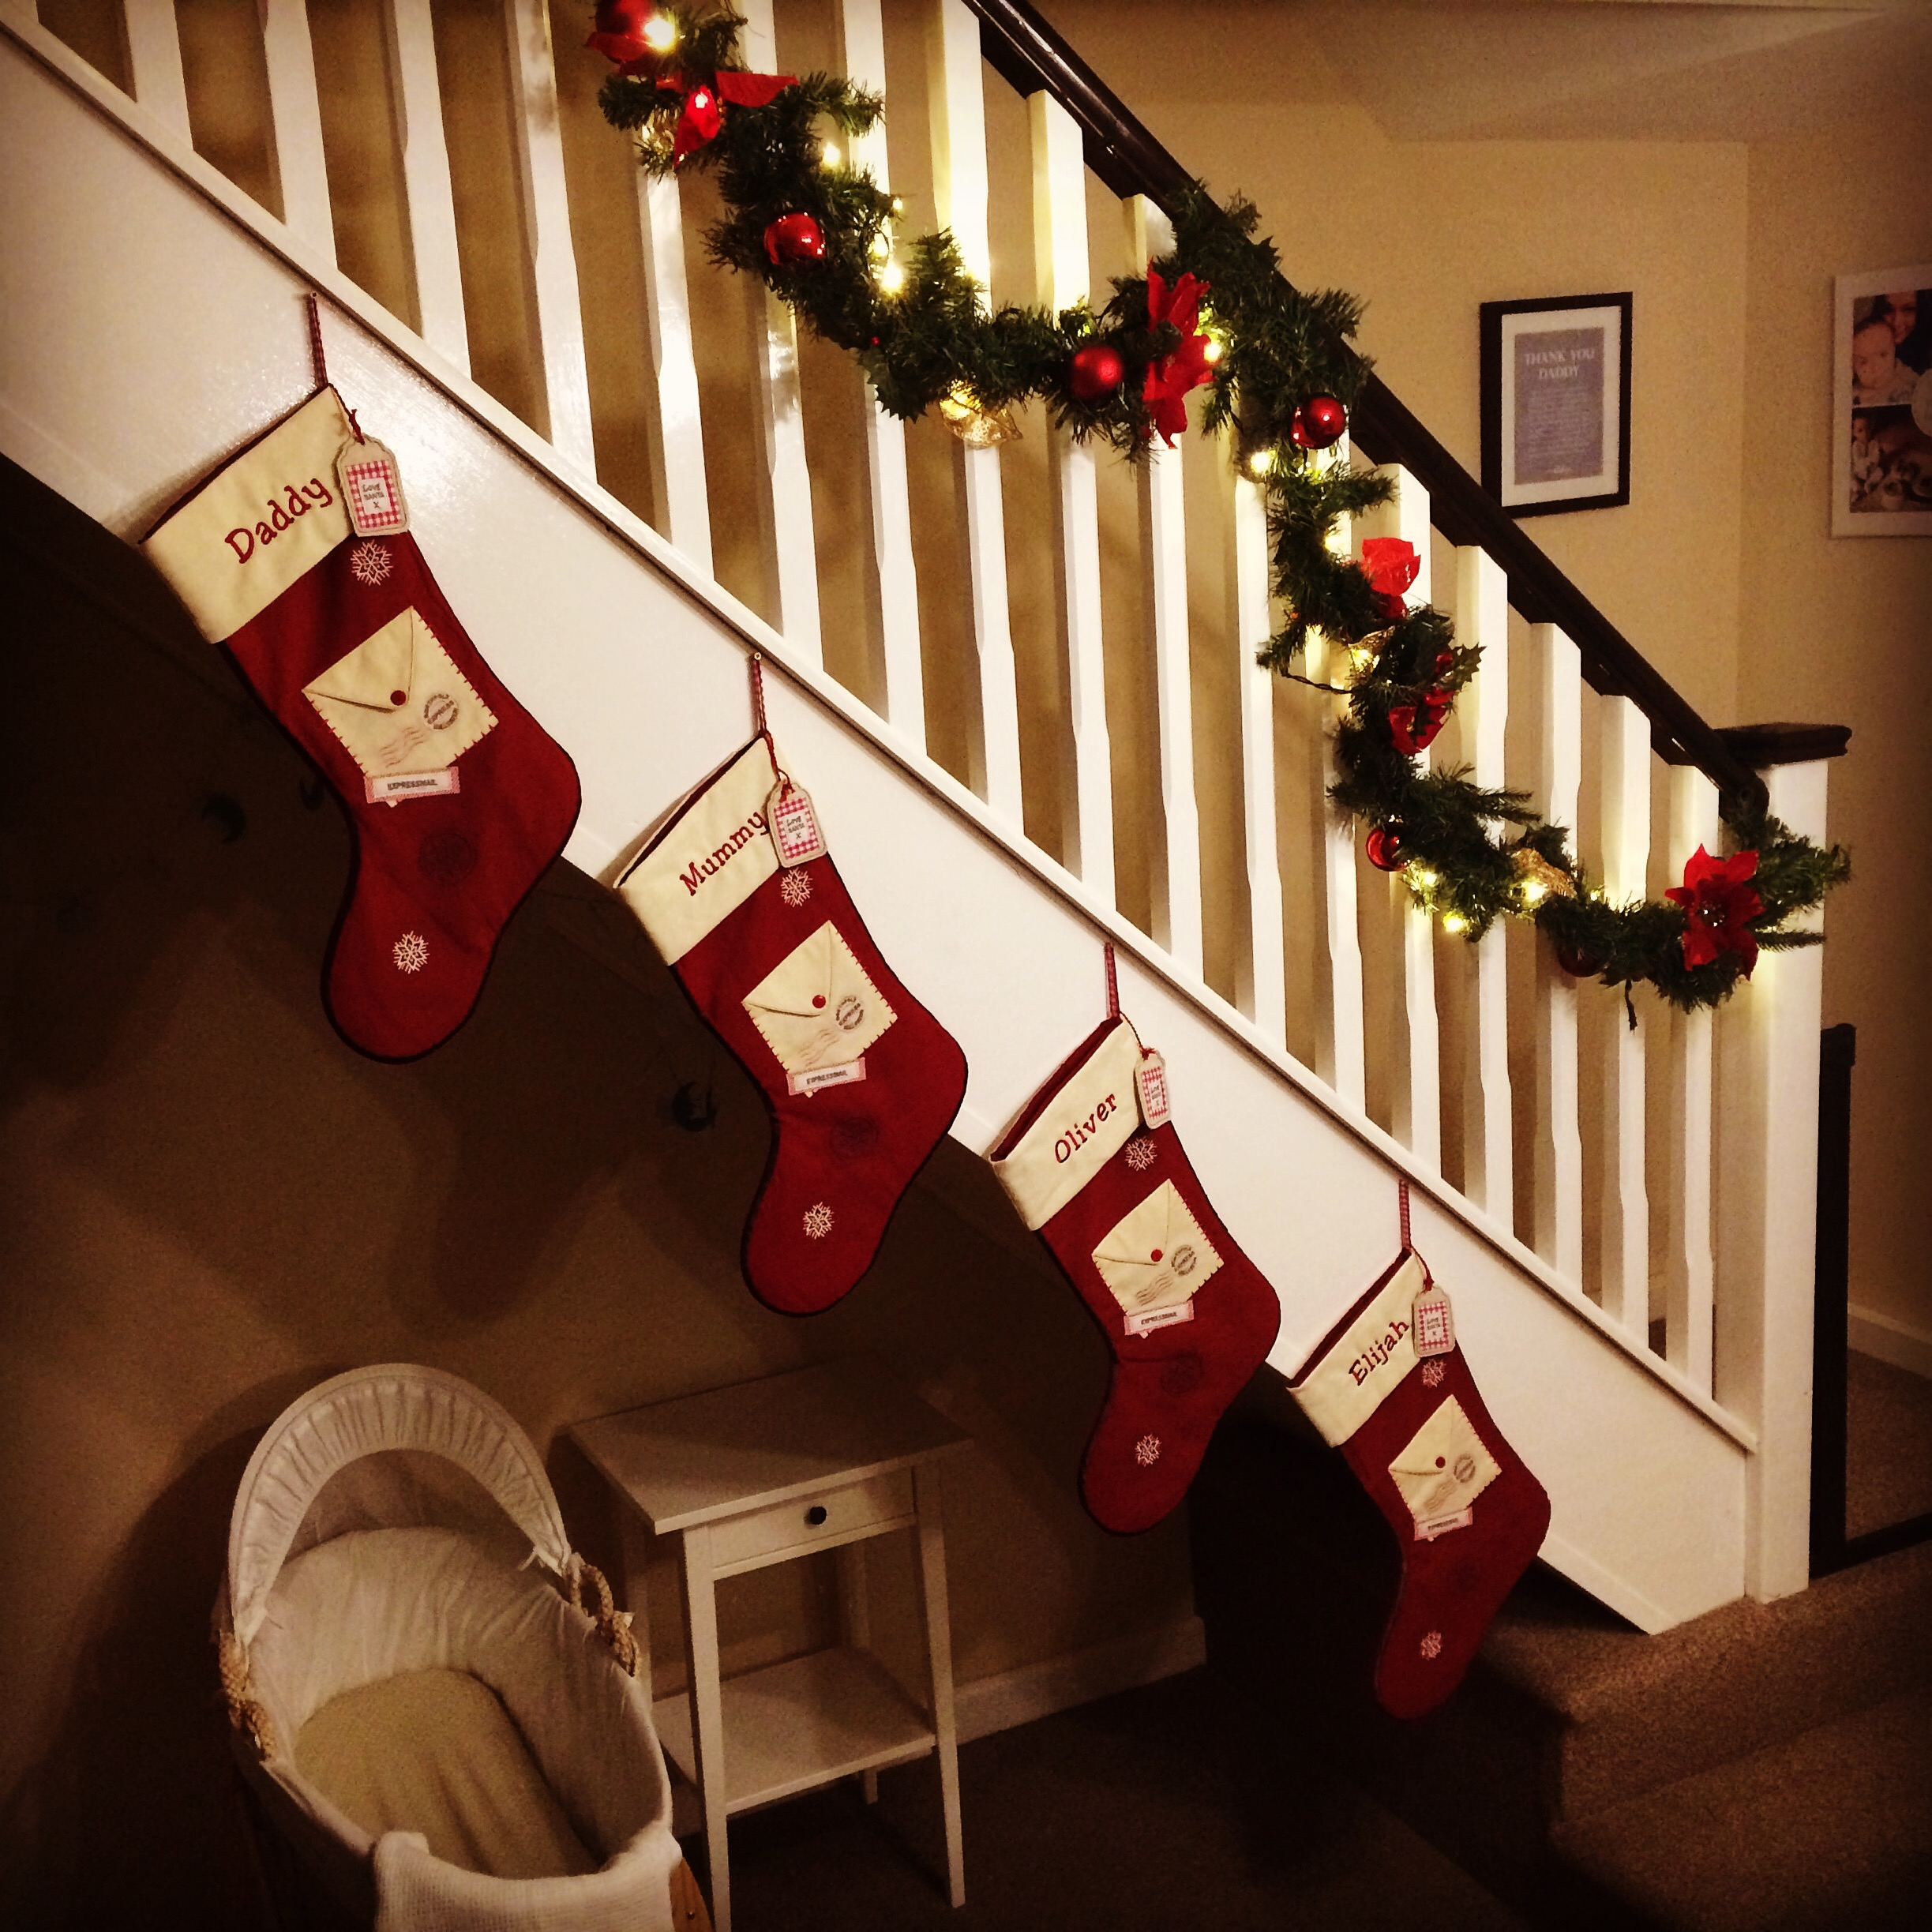 Hanging stockings on the staircase